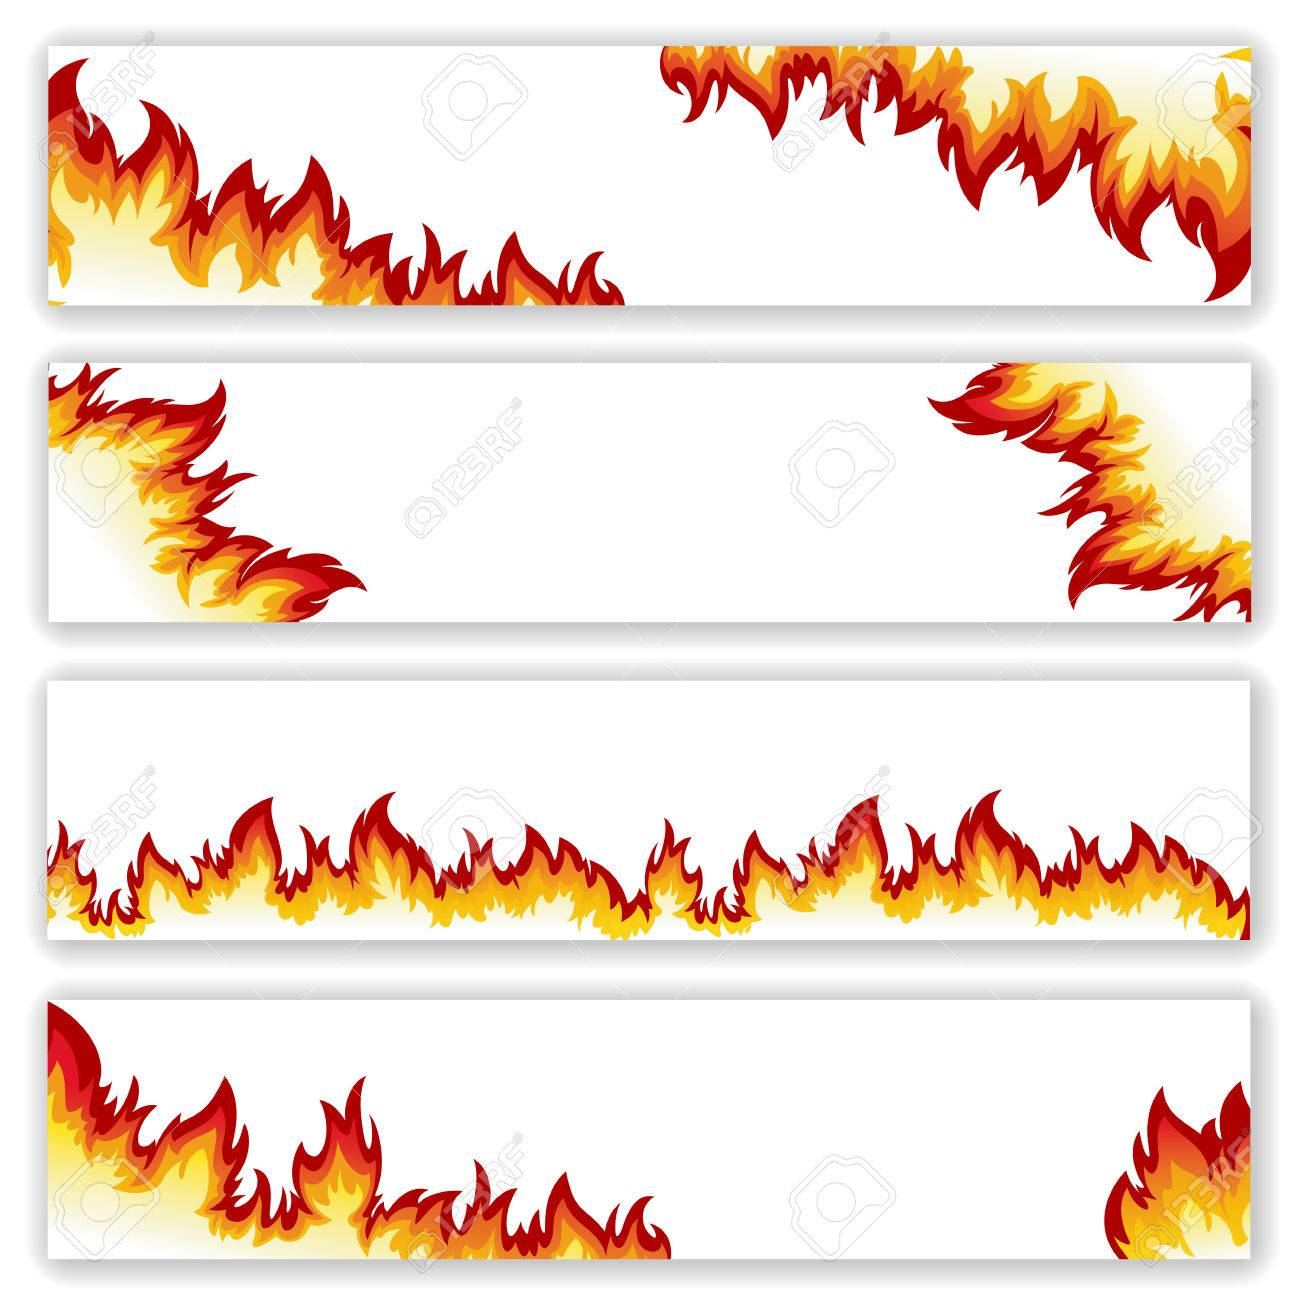 Set of banners flame of different shapes on a white background.Clipping Mask. - 40024042